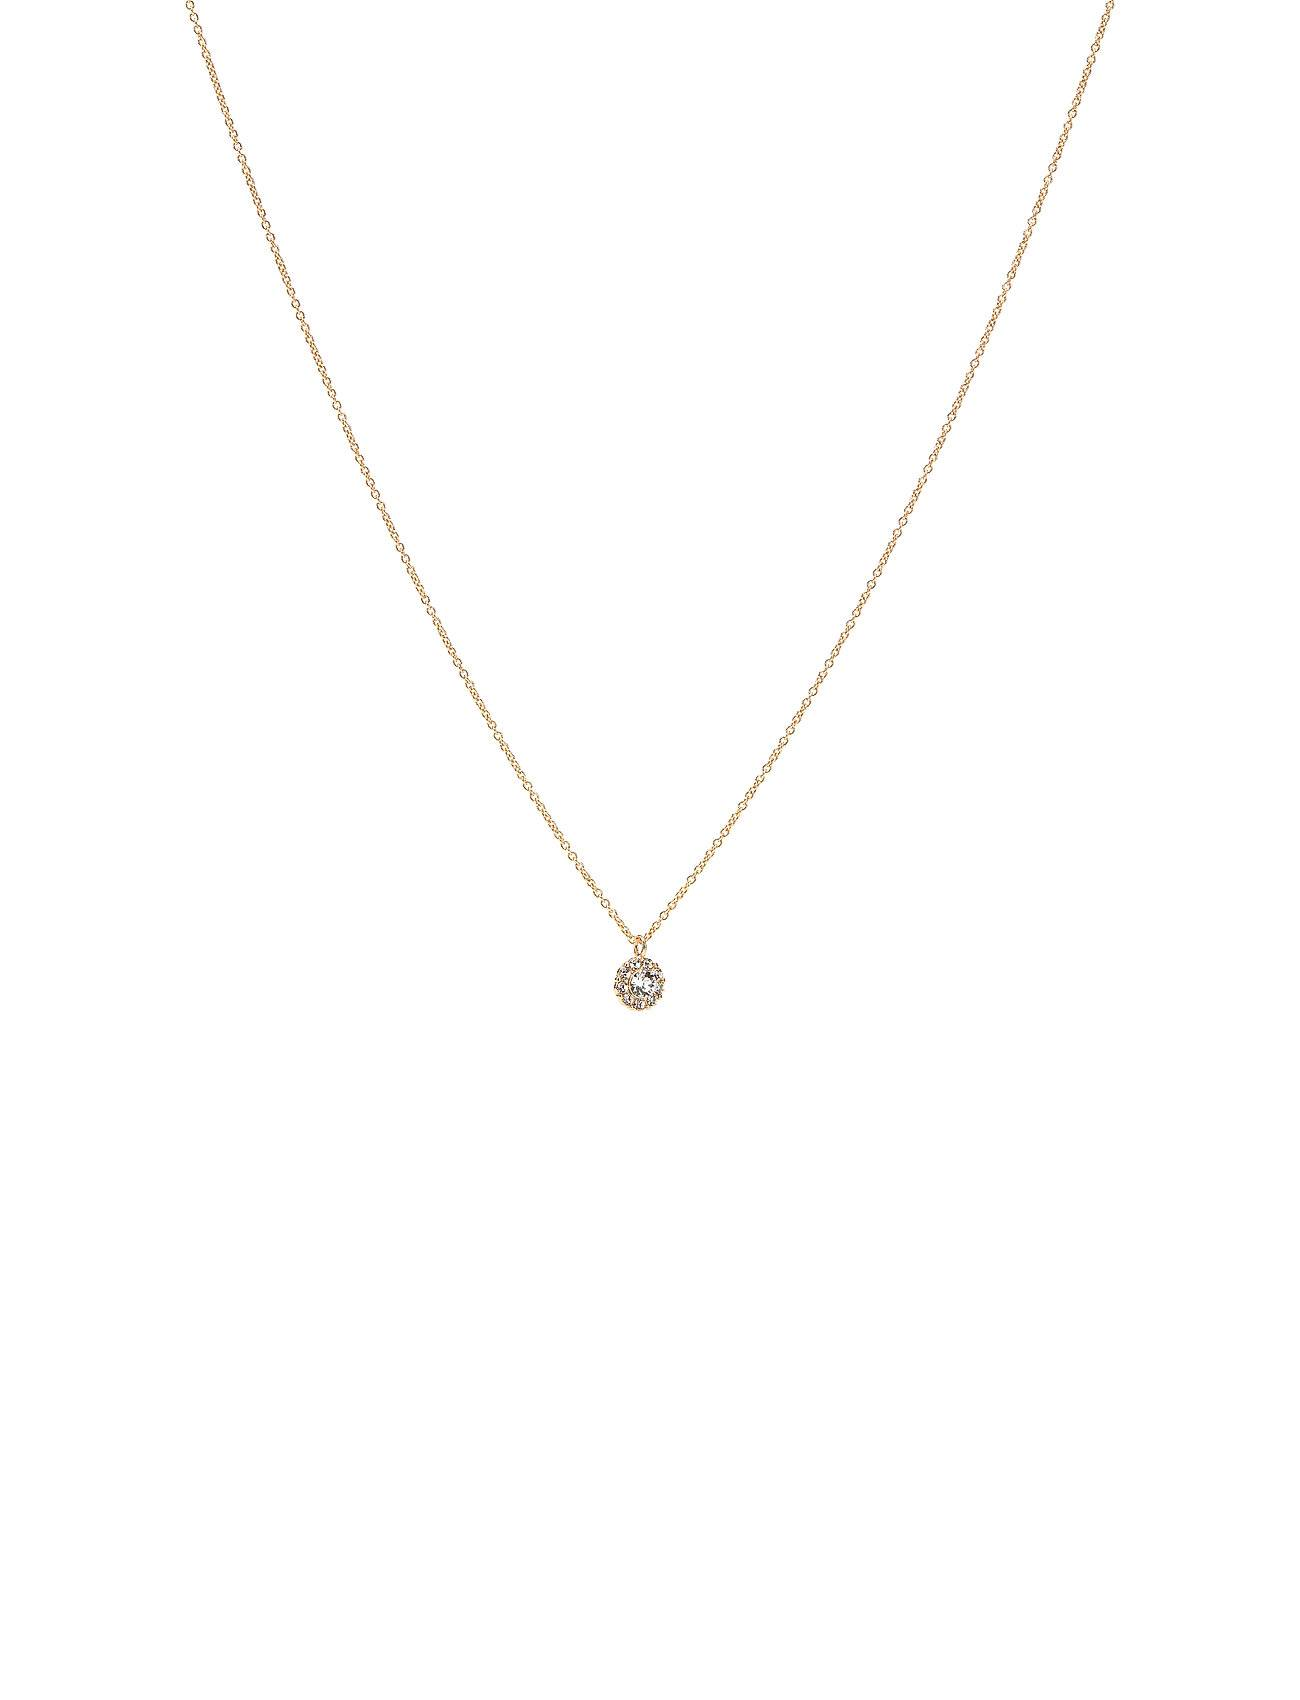 LILY AND ROSE Petite Miss Sofia Necklace - Crystal Accessories Jewellery Necklaces Dainty Necklaces Kulta LILY AND ROSE